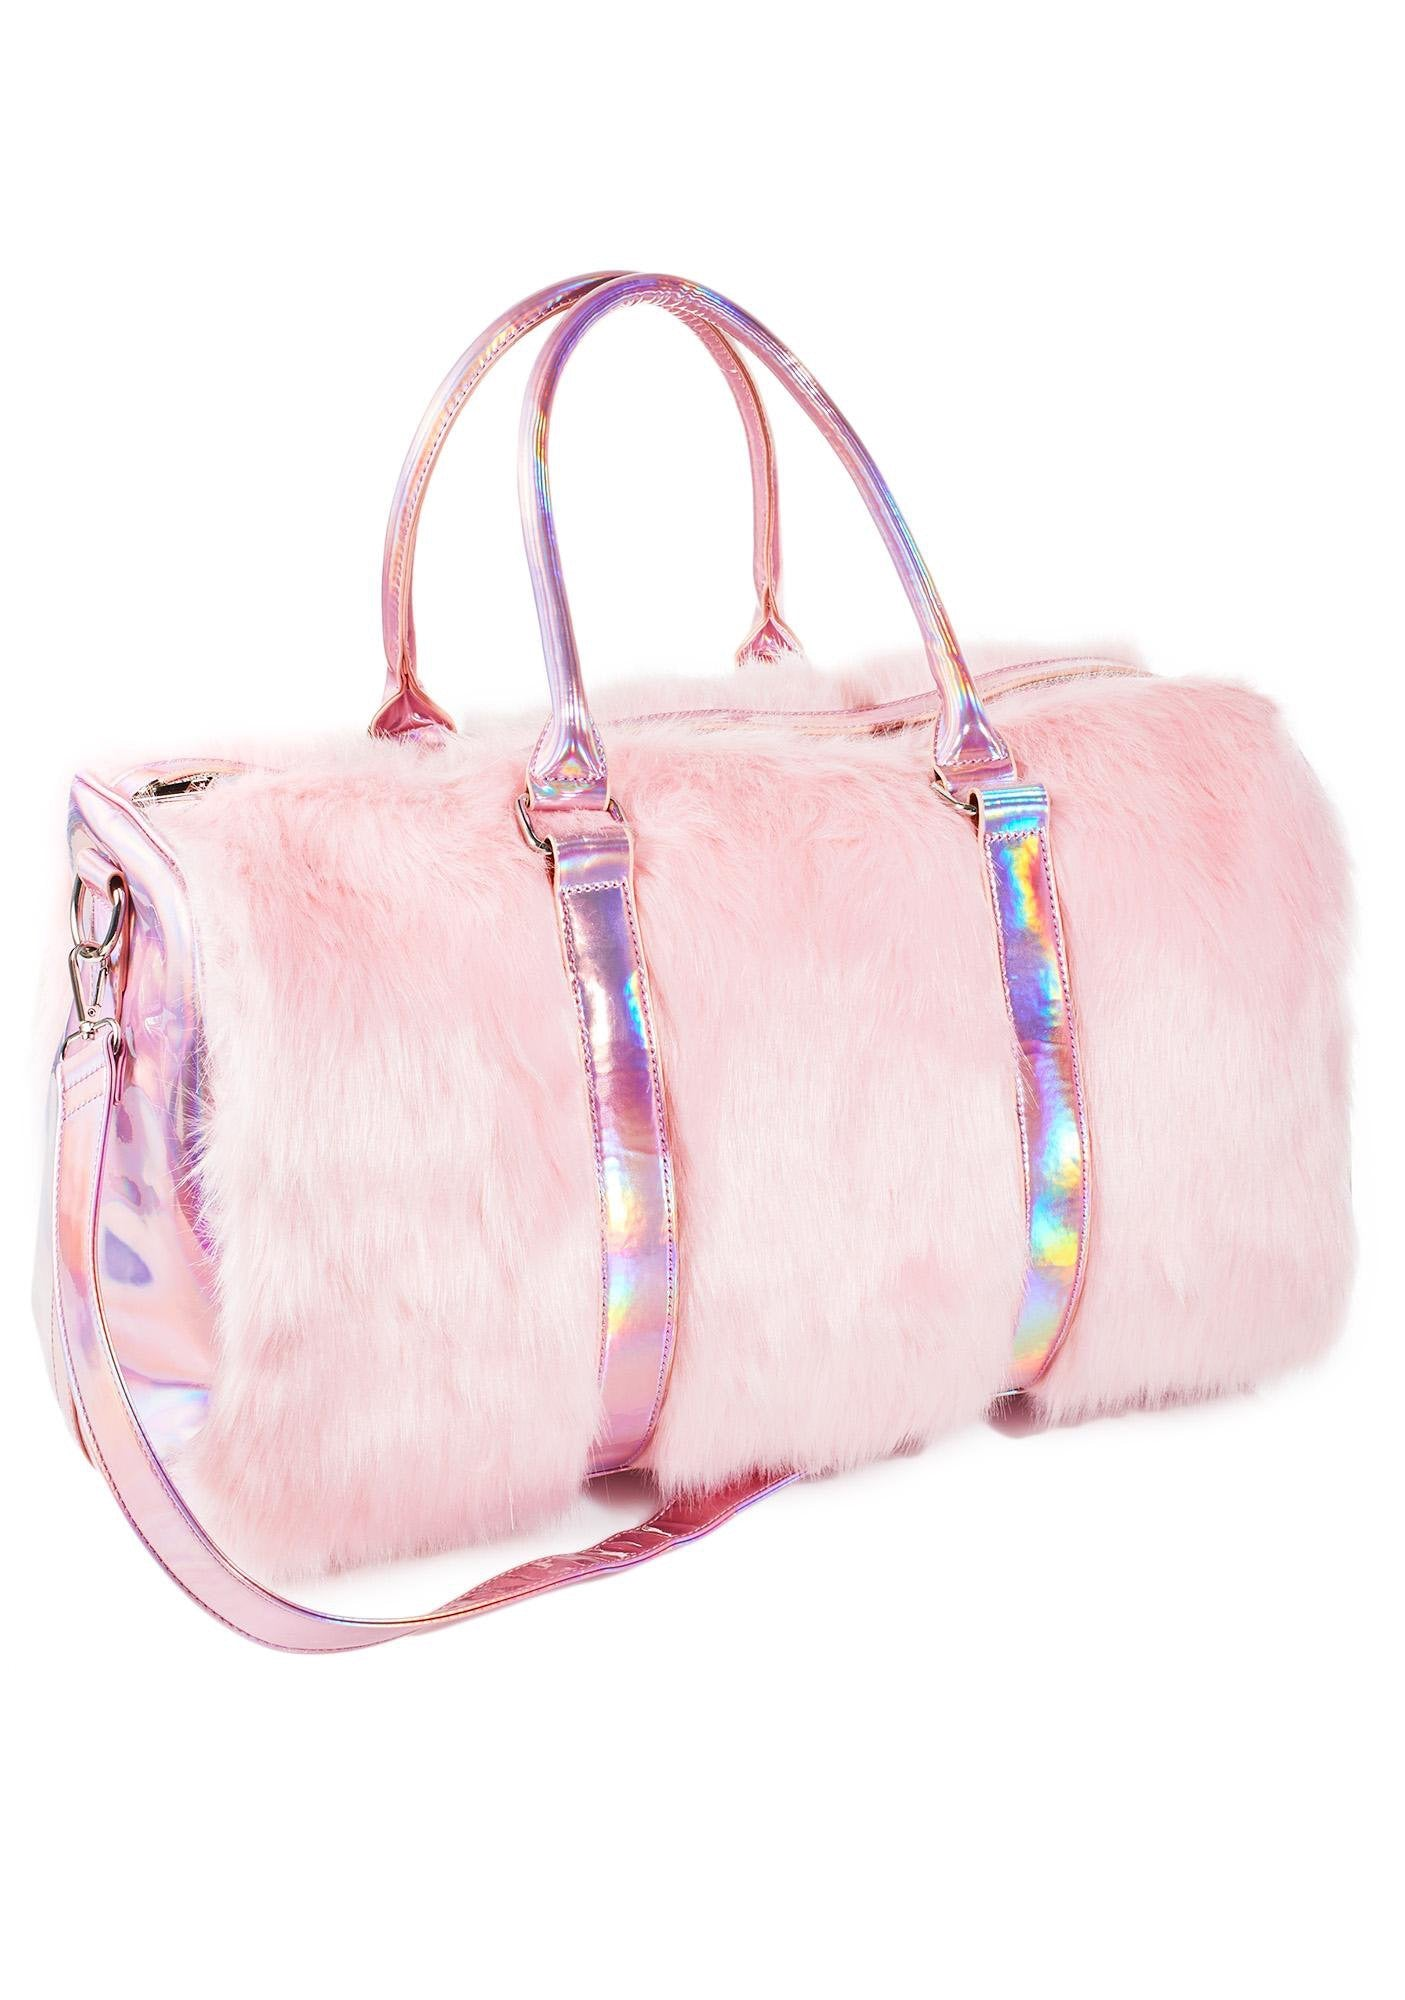 FUZZY PINK DUFFLE *PRE-ORDER*